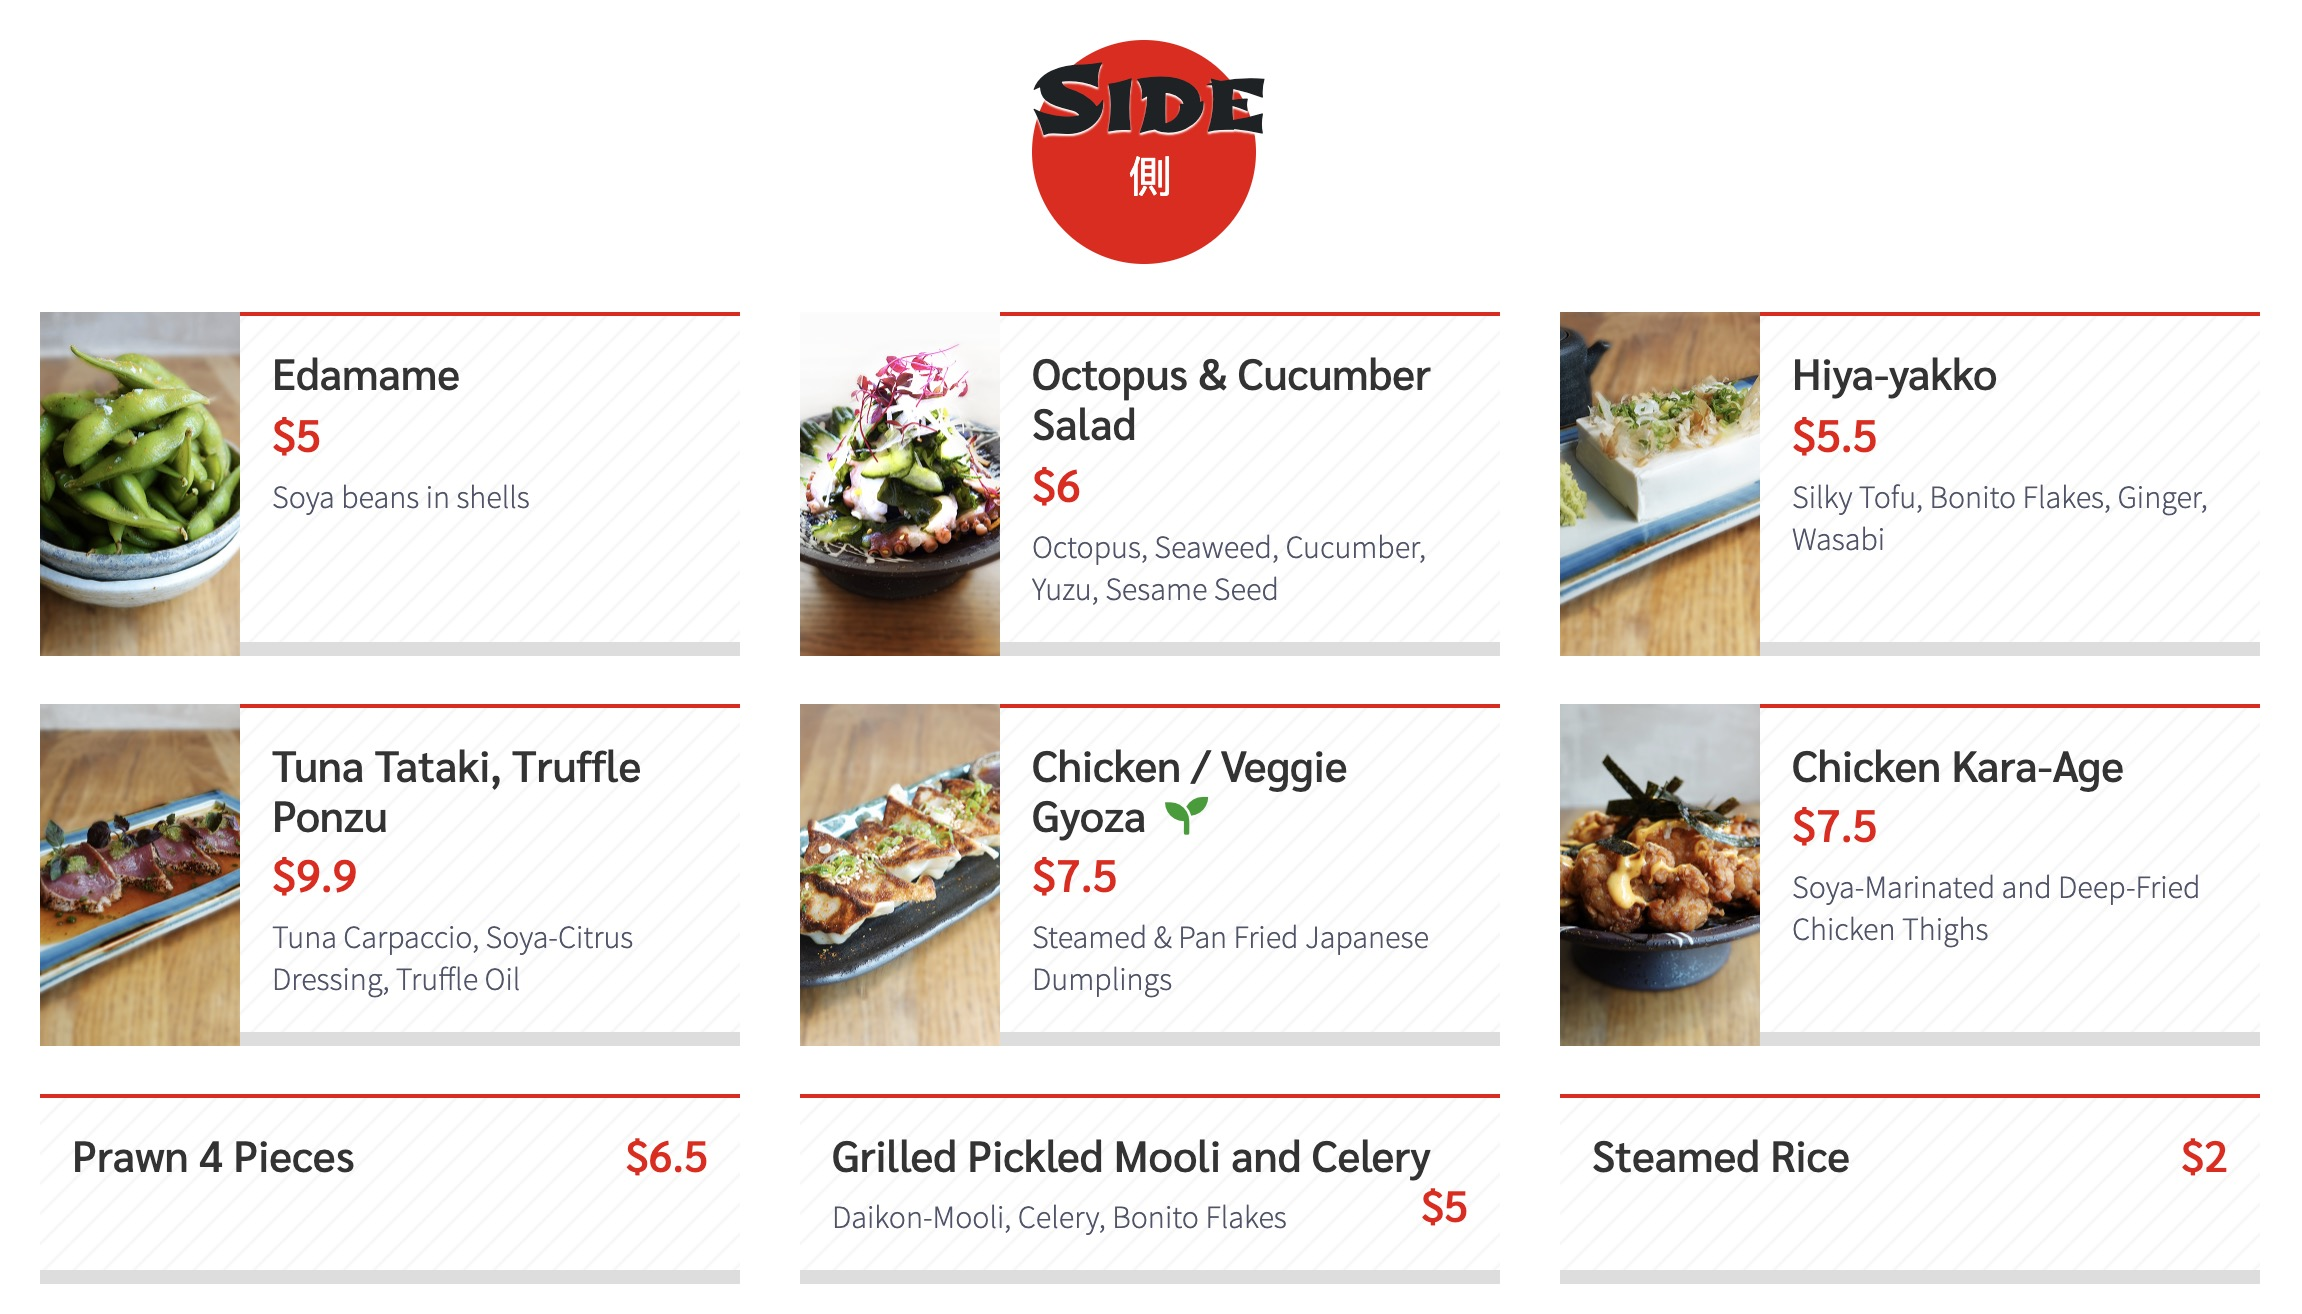 Traditional Japanese red and black theme for sushi or Asian food directory. Sub-category design available with Asian style vertical category names on the left side.